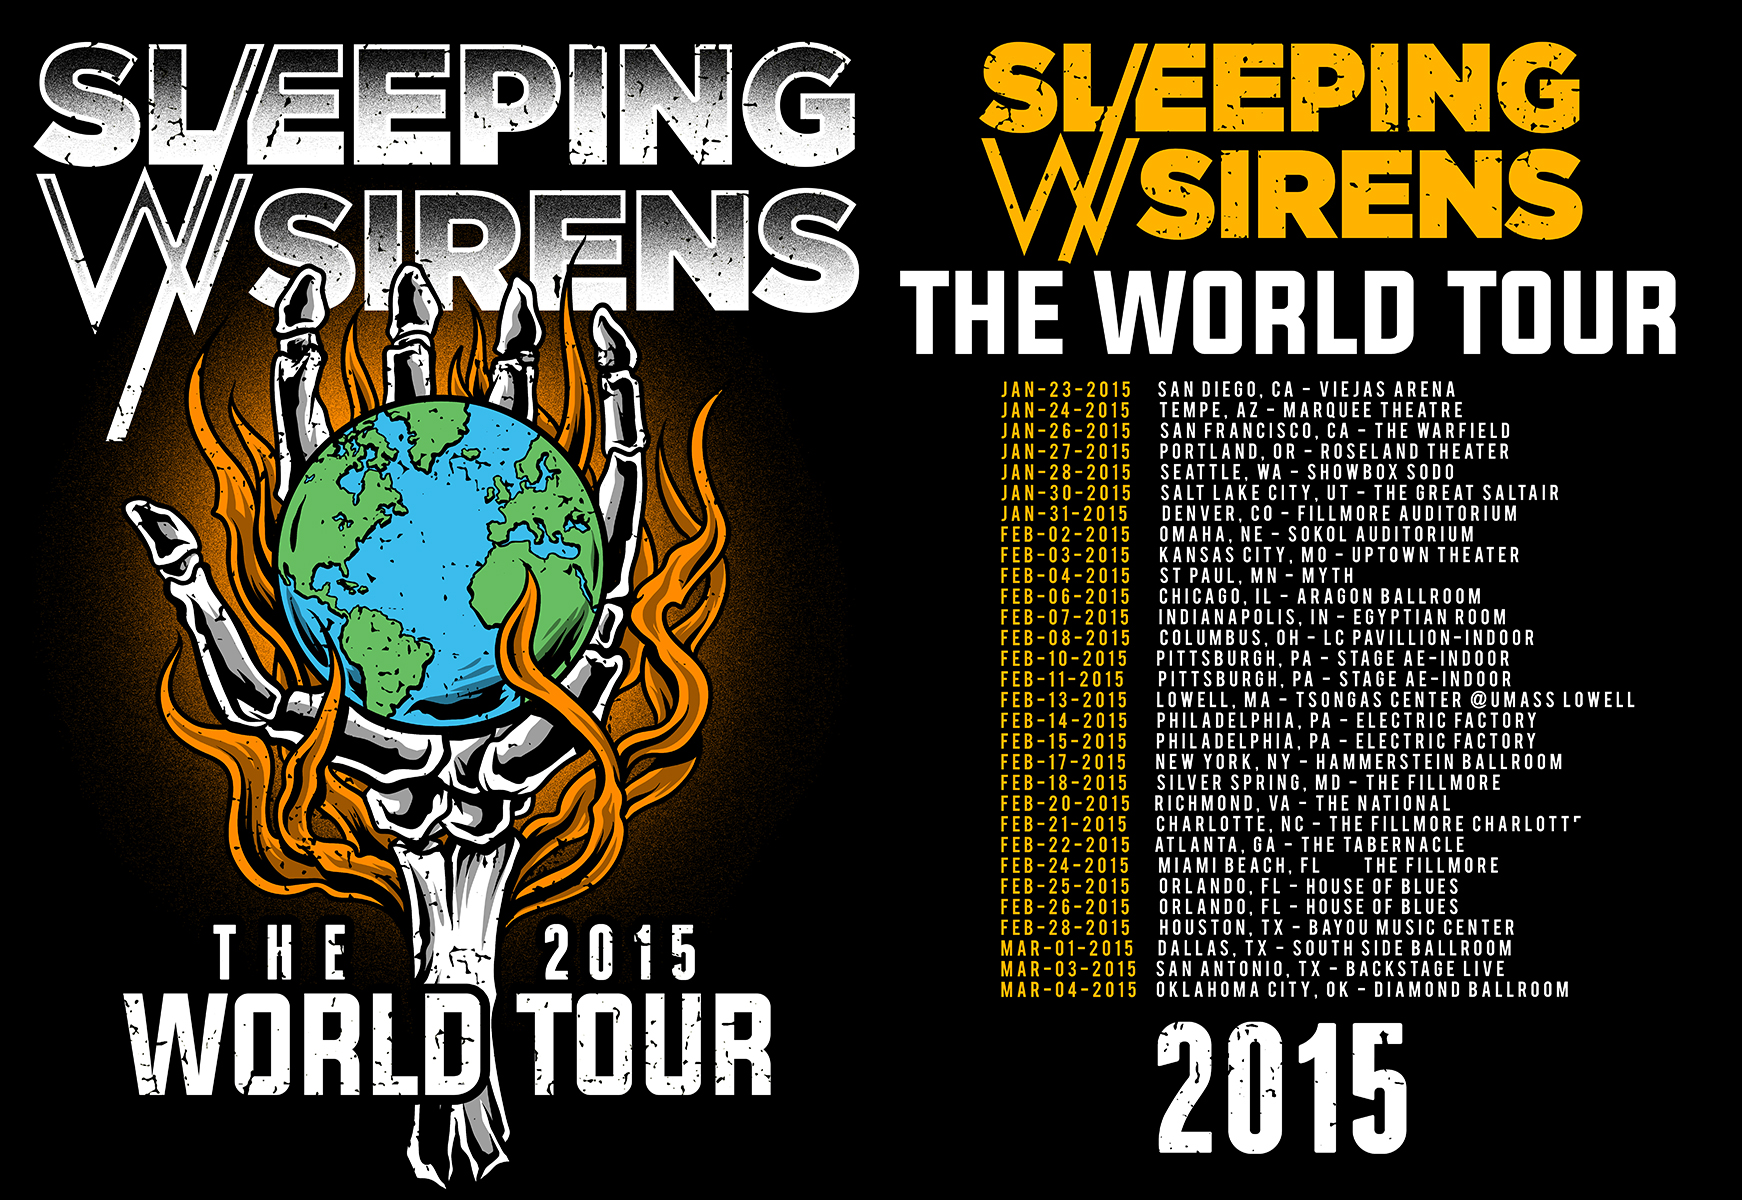 ABOVE: SWS 2015 OFFICIAL WORLD TOUR SHIRT ARTWORK  RIGHT: SLEEPING WITH SIRENS JAPAN TOUR 2015 EXCLUSIVE ARTWORK  BELOW: SWS HOT TOPIC MERCHANDISE ARTWORK.